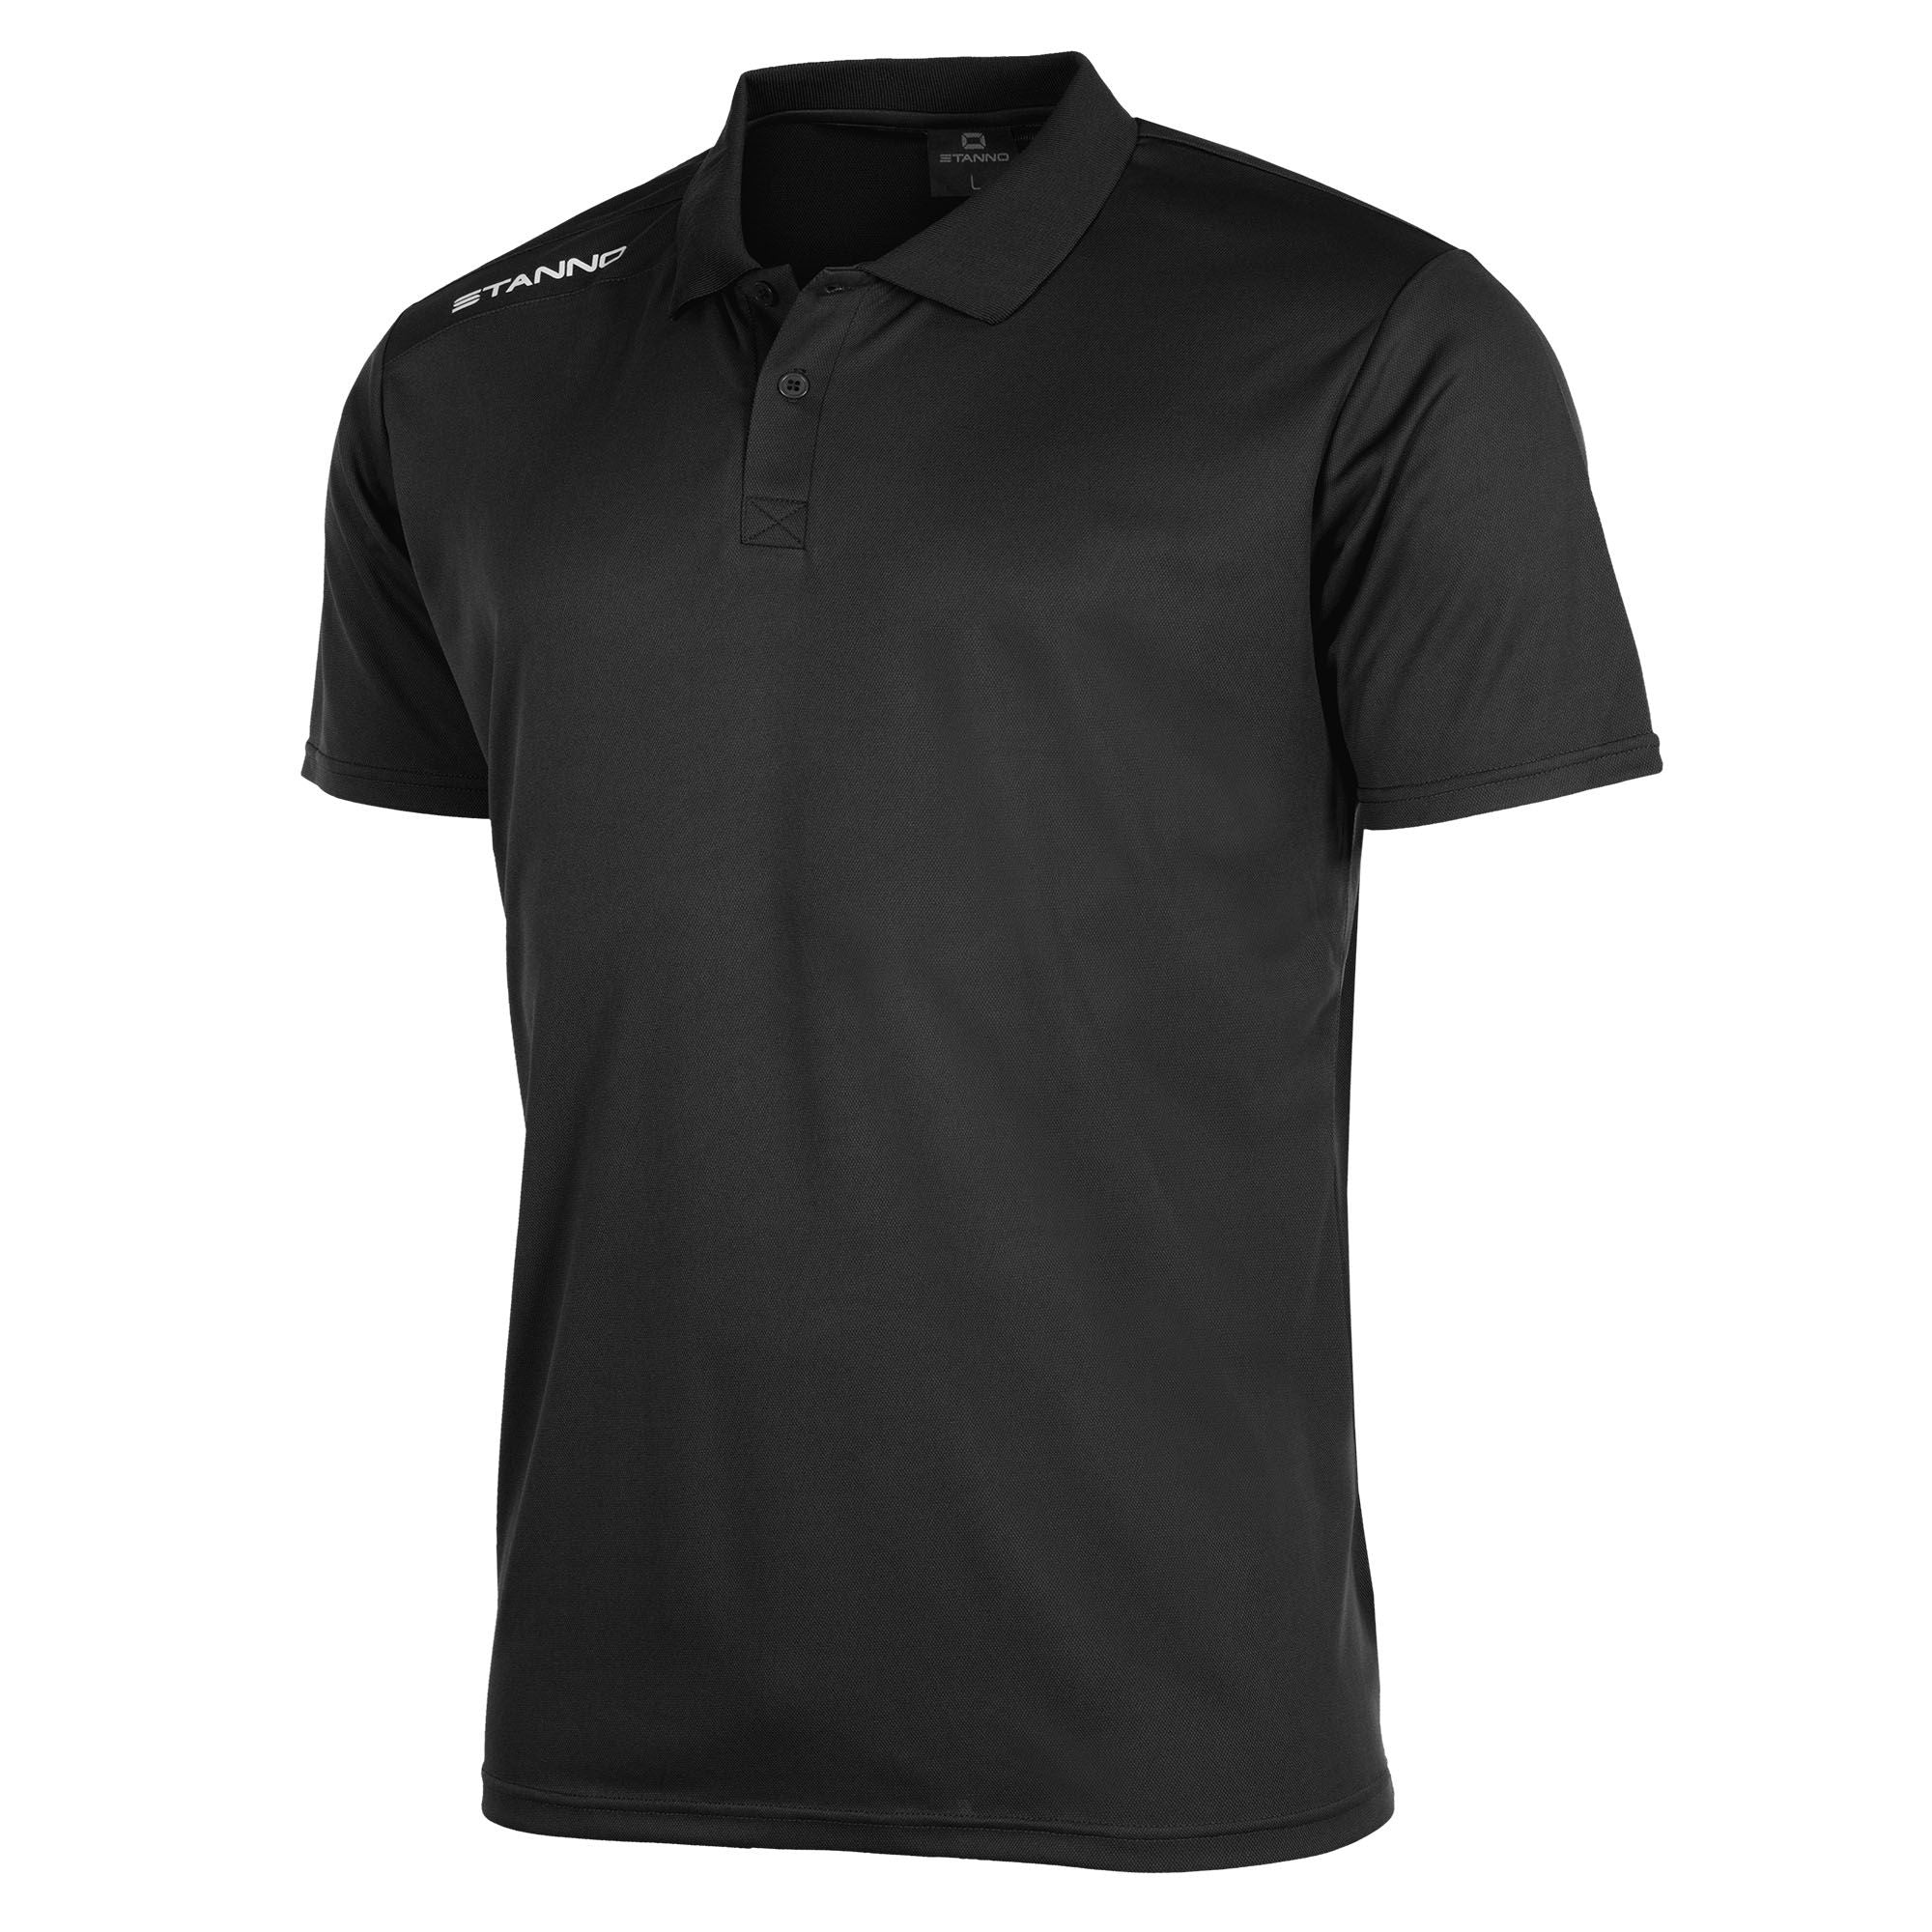 Stanno Field Polo Shirt in black with white text logo on right shoulder